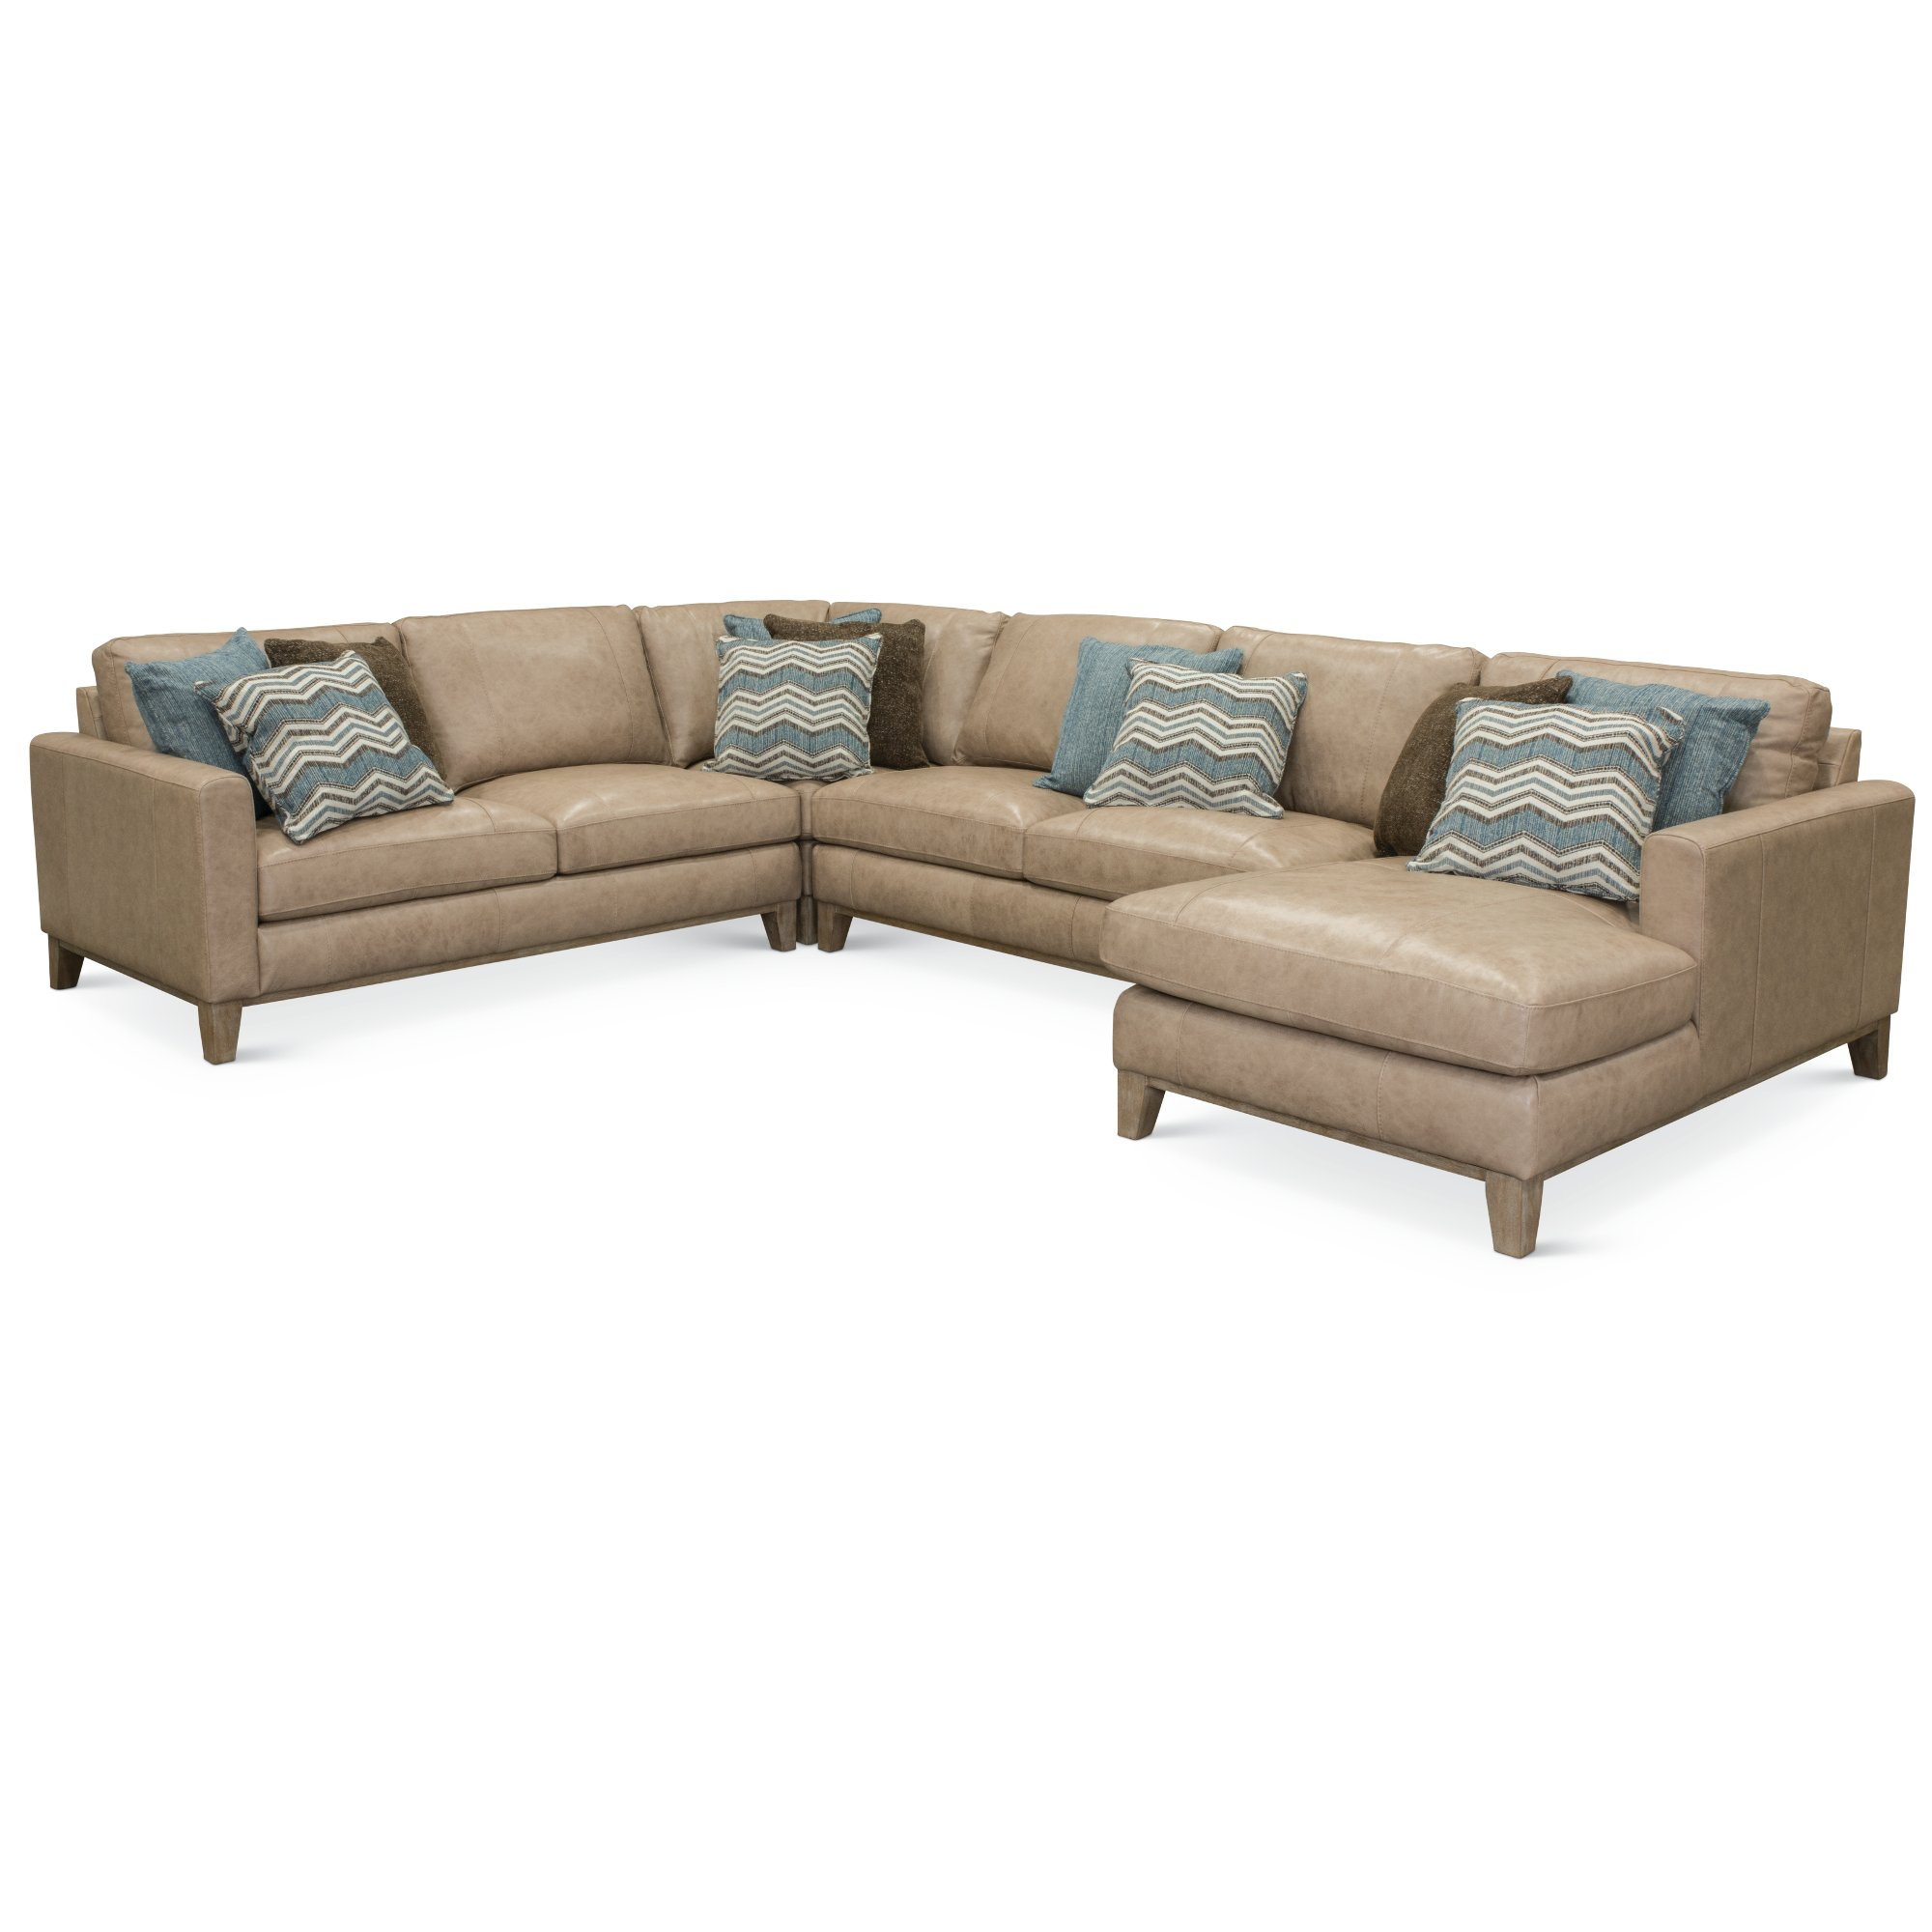 Contemporary 4 Piece Sand Leather Sectional Sofa Mutual